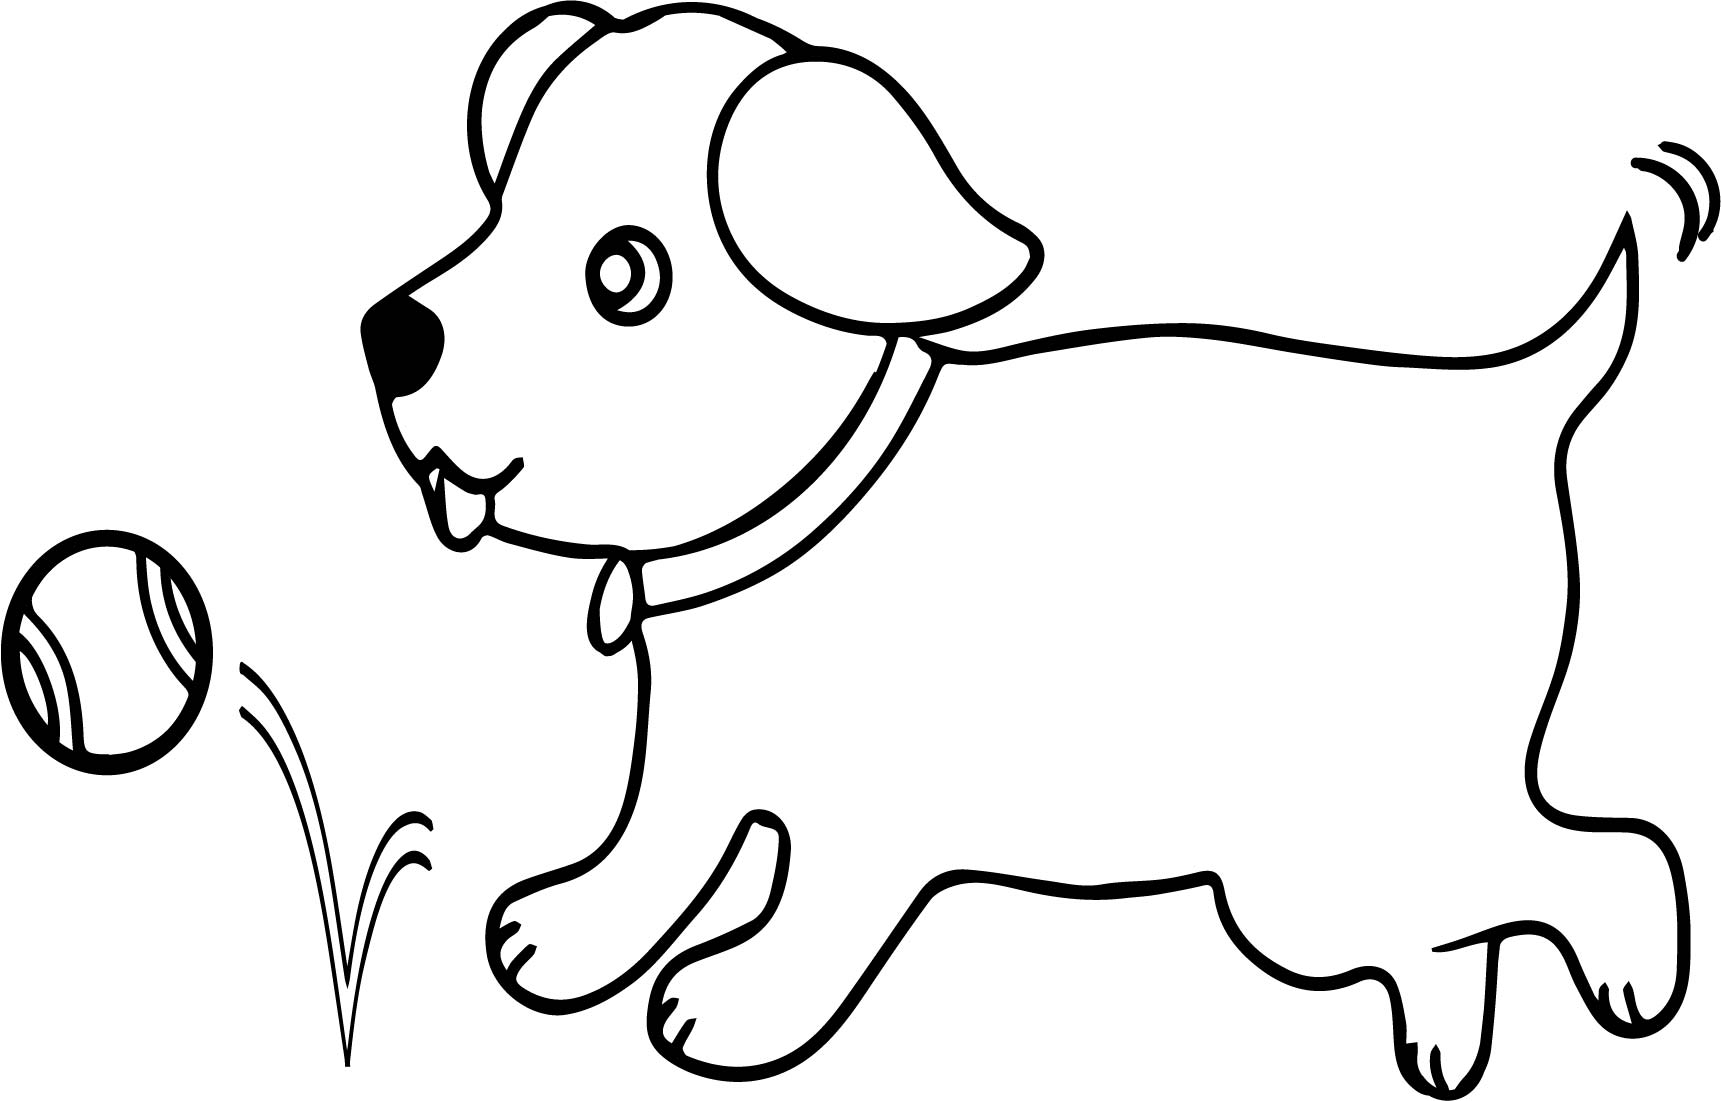 1721x1101 Run Dog With Tennis Ball Coloring Page Wecoloringpage